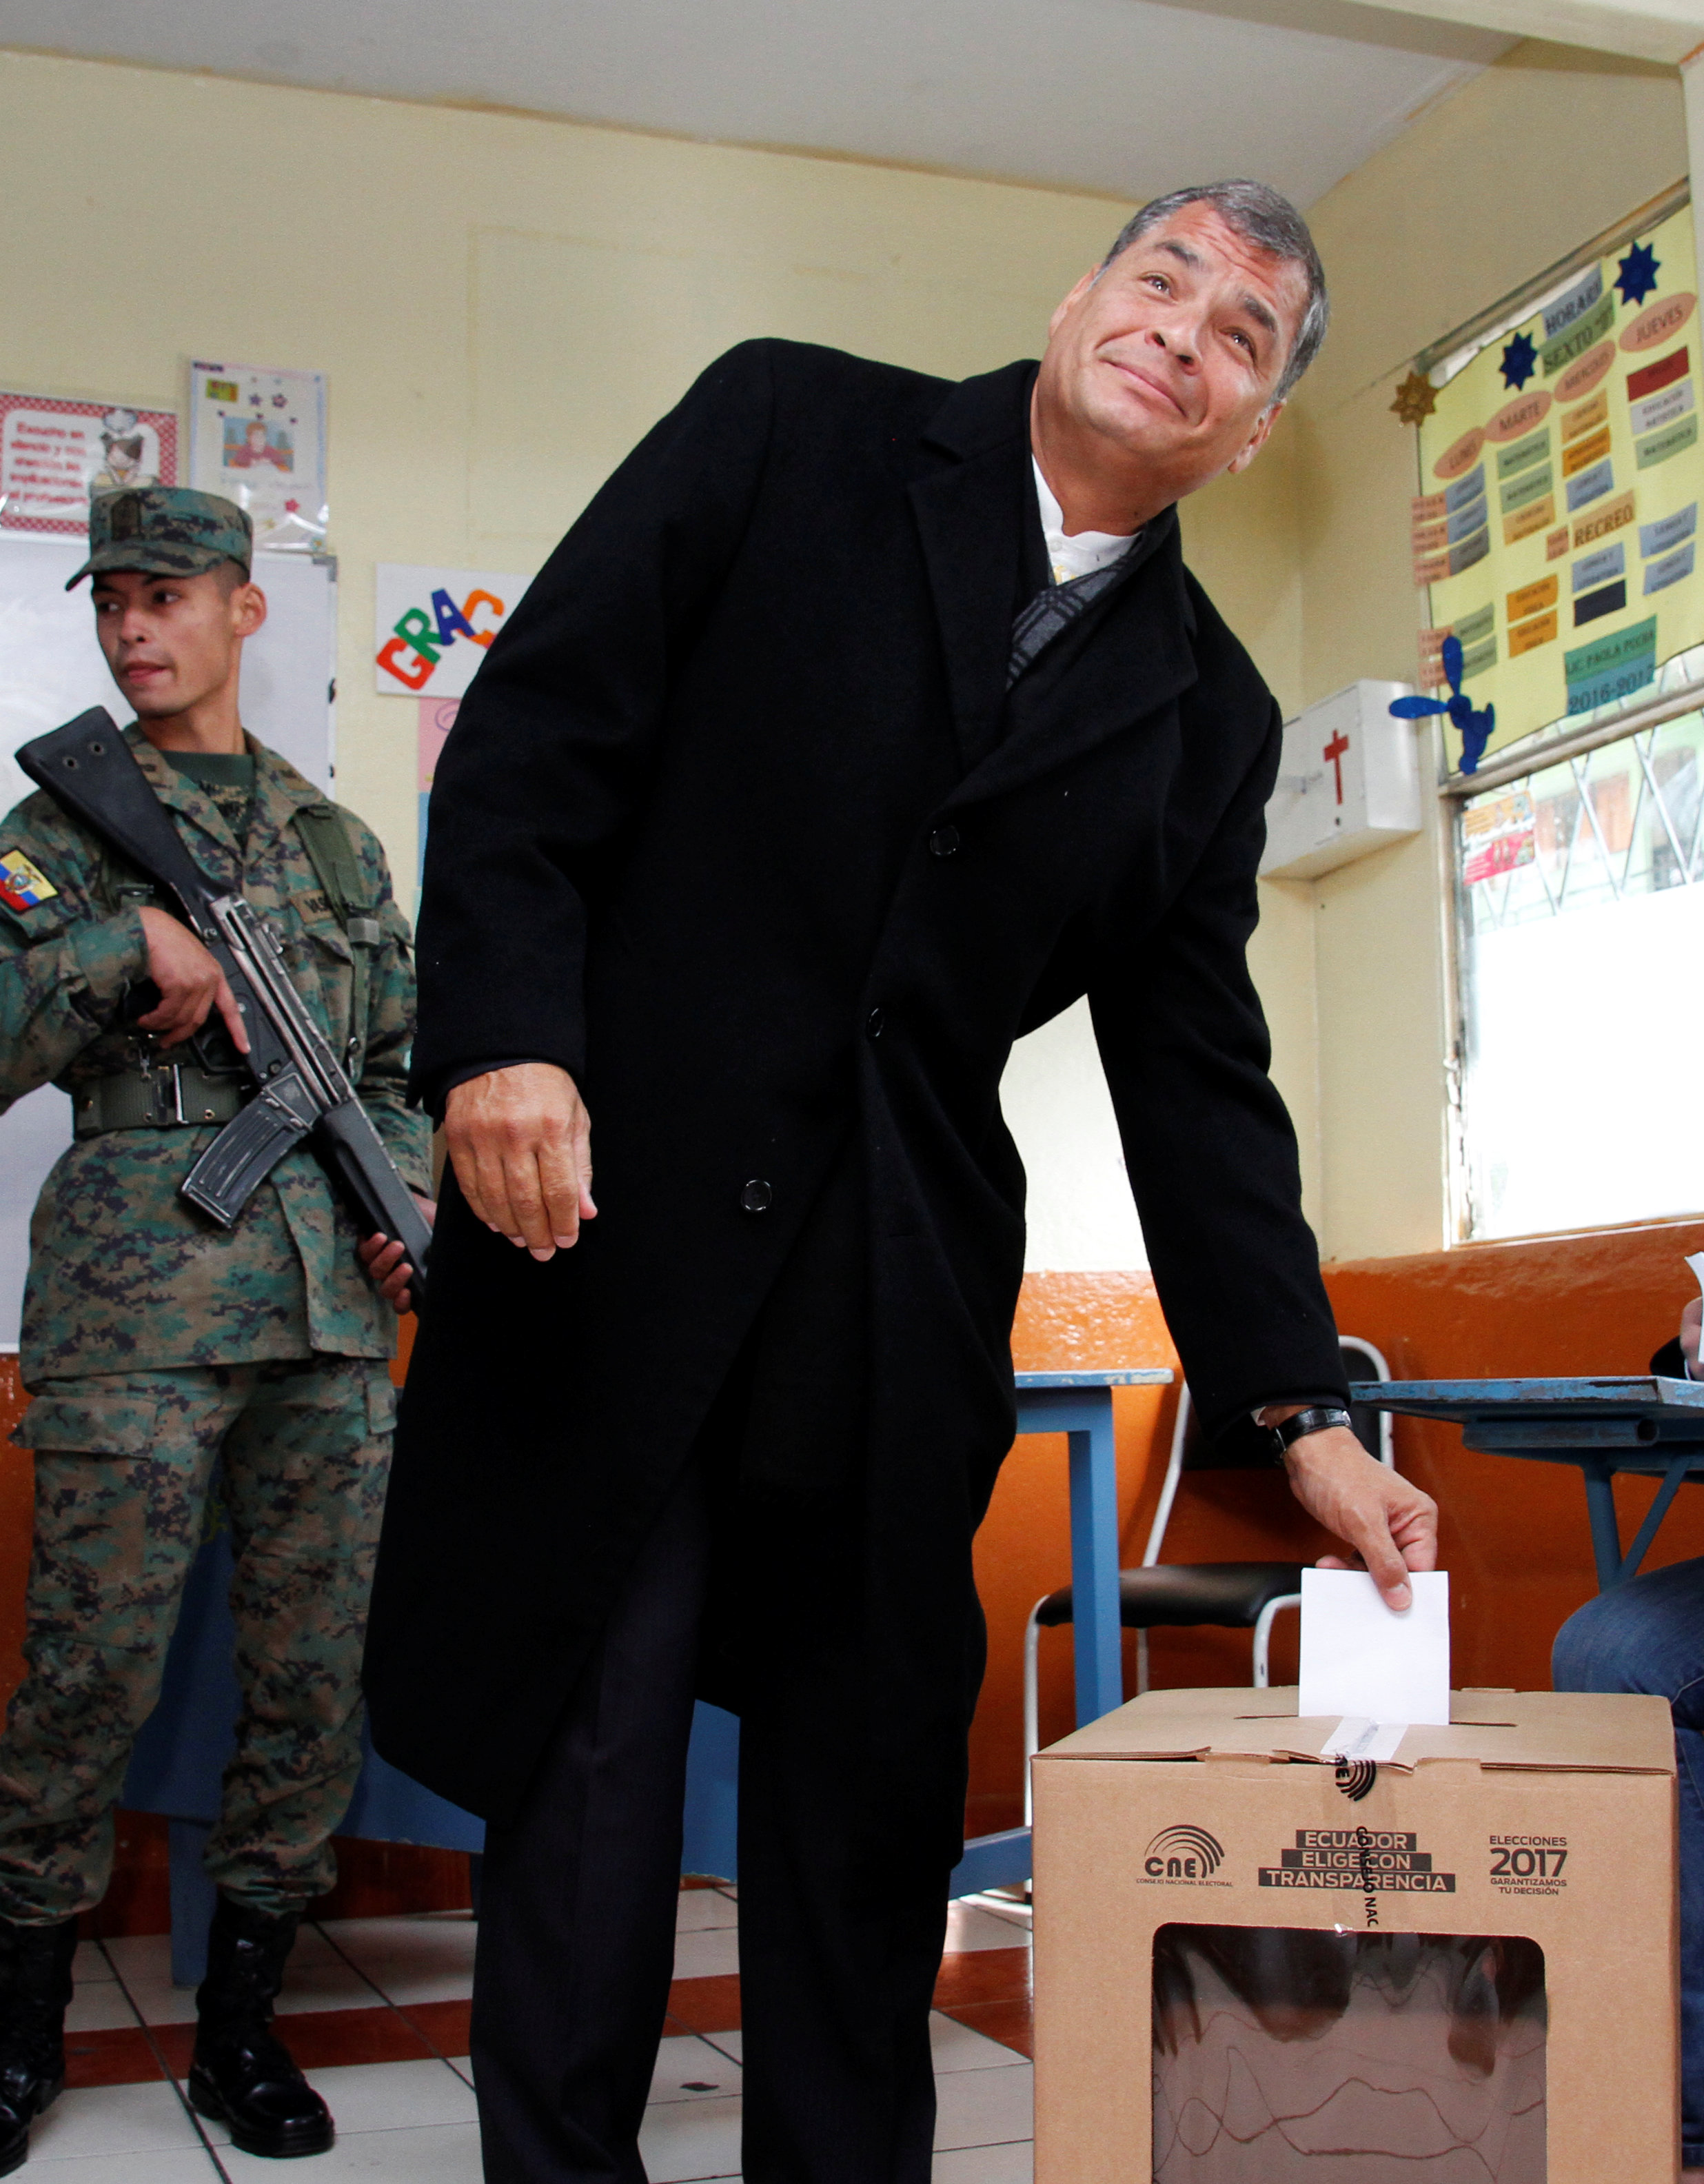 Ecuador's President Rafael Correa casts his vote at school used as a polling station during the presidential election, in Quito, Ecuador on April 2, 2017. (REUTERS/Carlos Noriega)